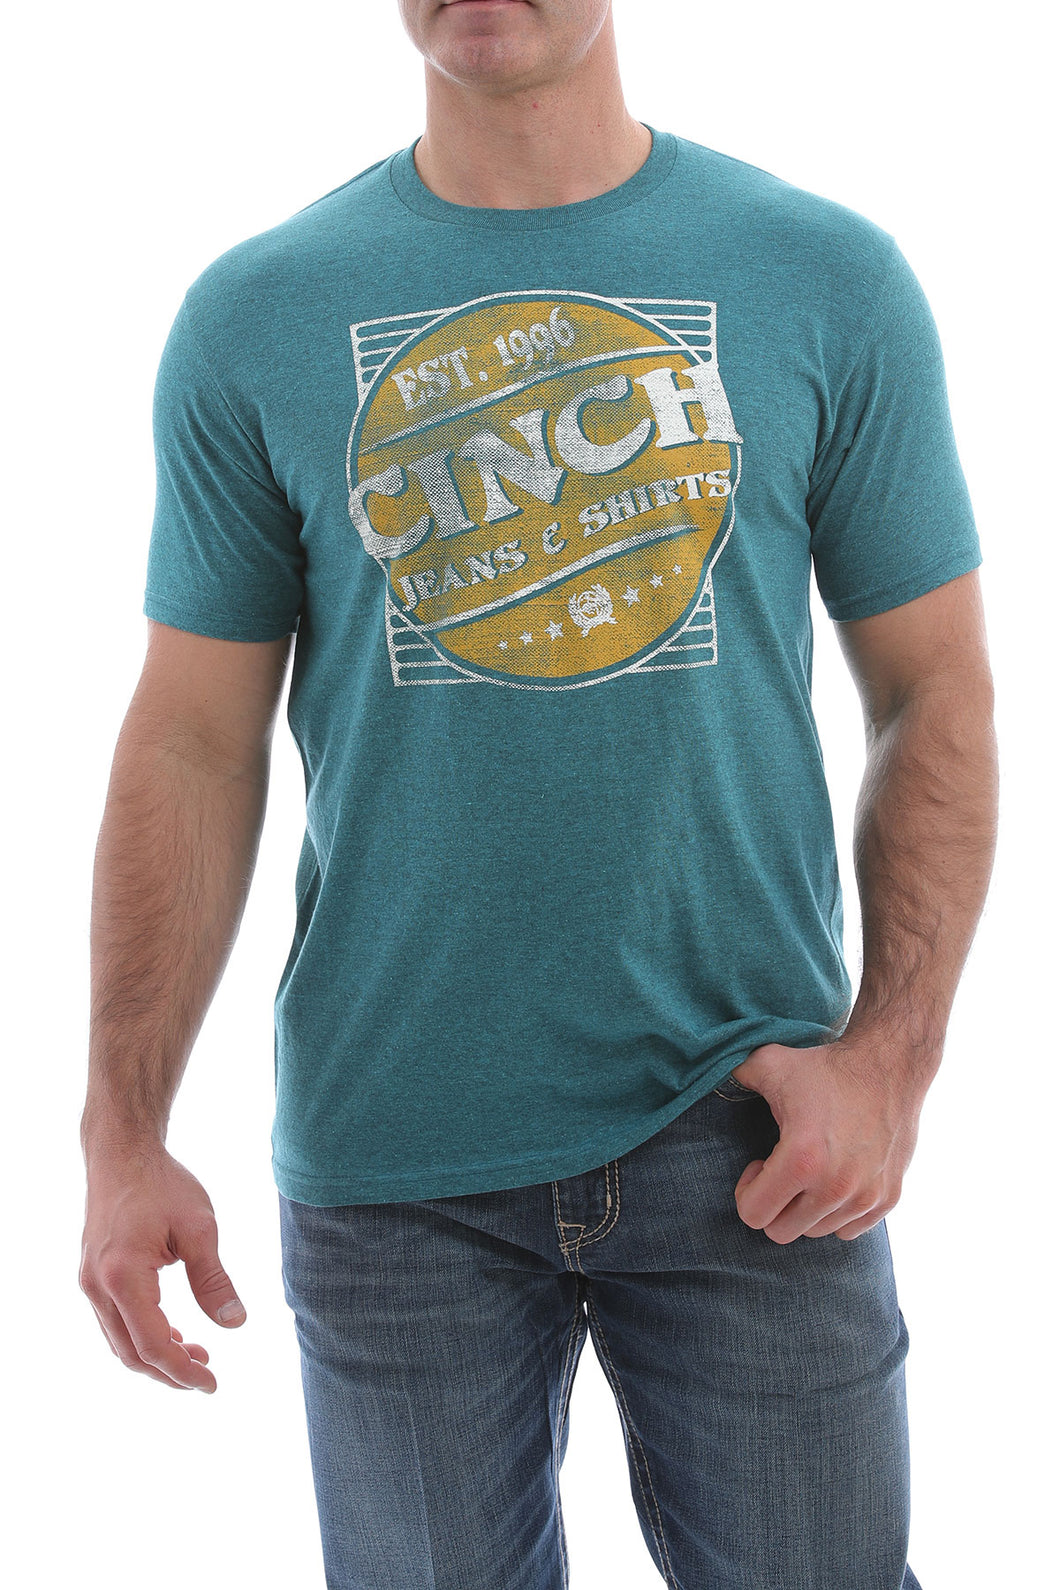 Men's Cinch Teal Tee